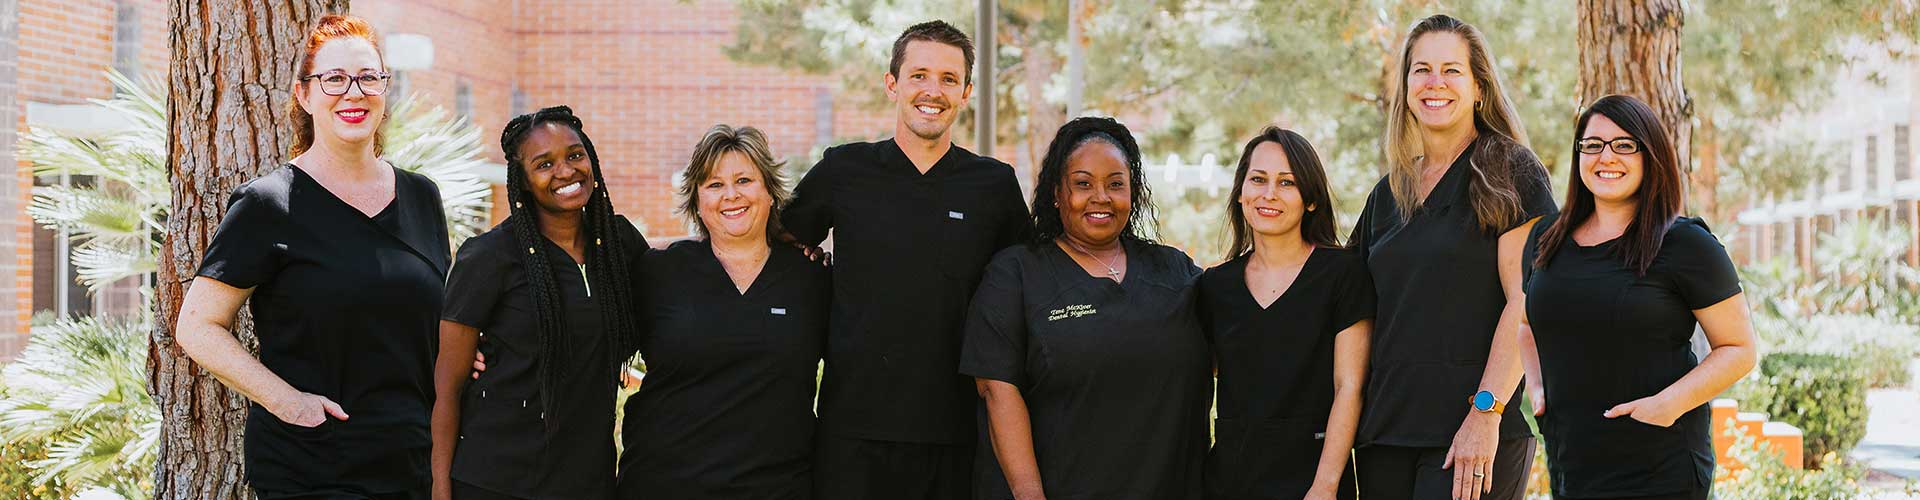 Meet the Team Header Image - Augusta Dental